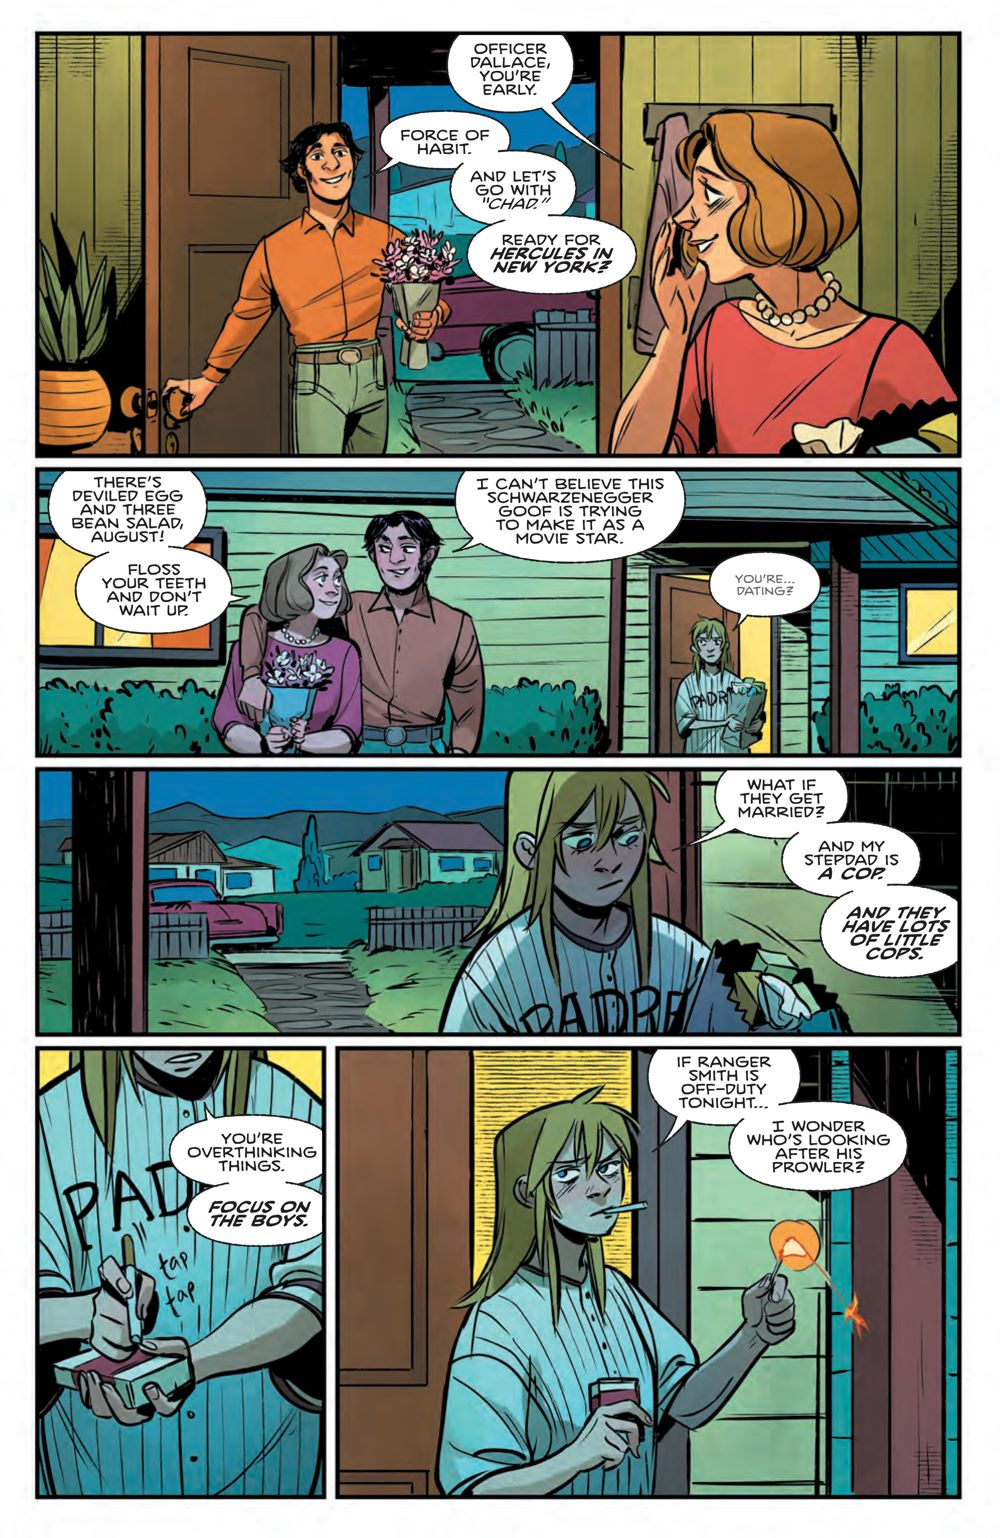 ProctorValleyRoad_003_PRESS_8 ComicList Previews: PROCTOR VALLEY ROAD #3 (OF 5)